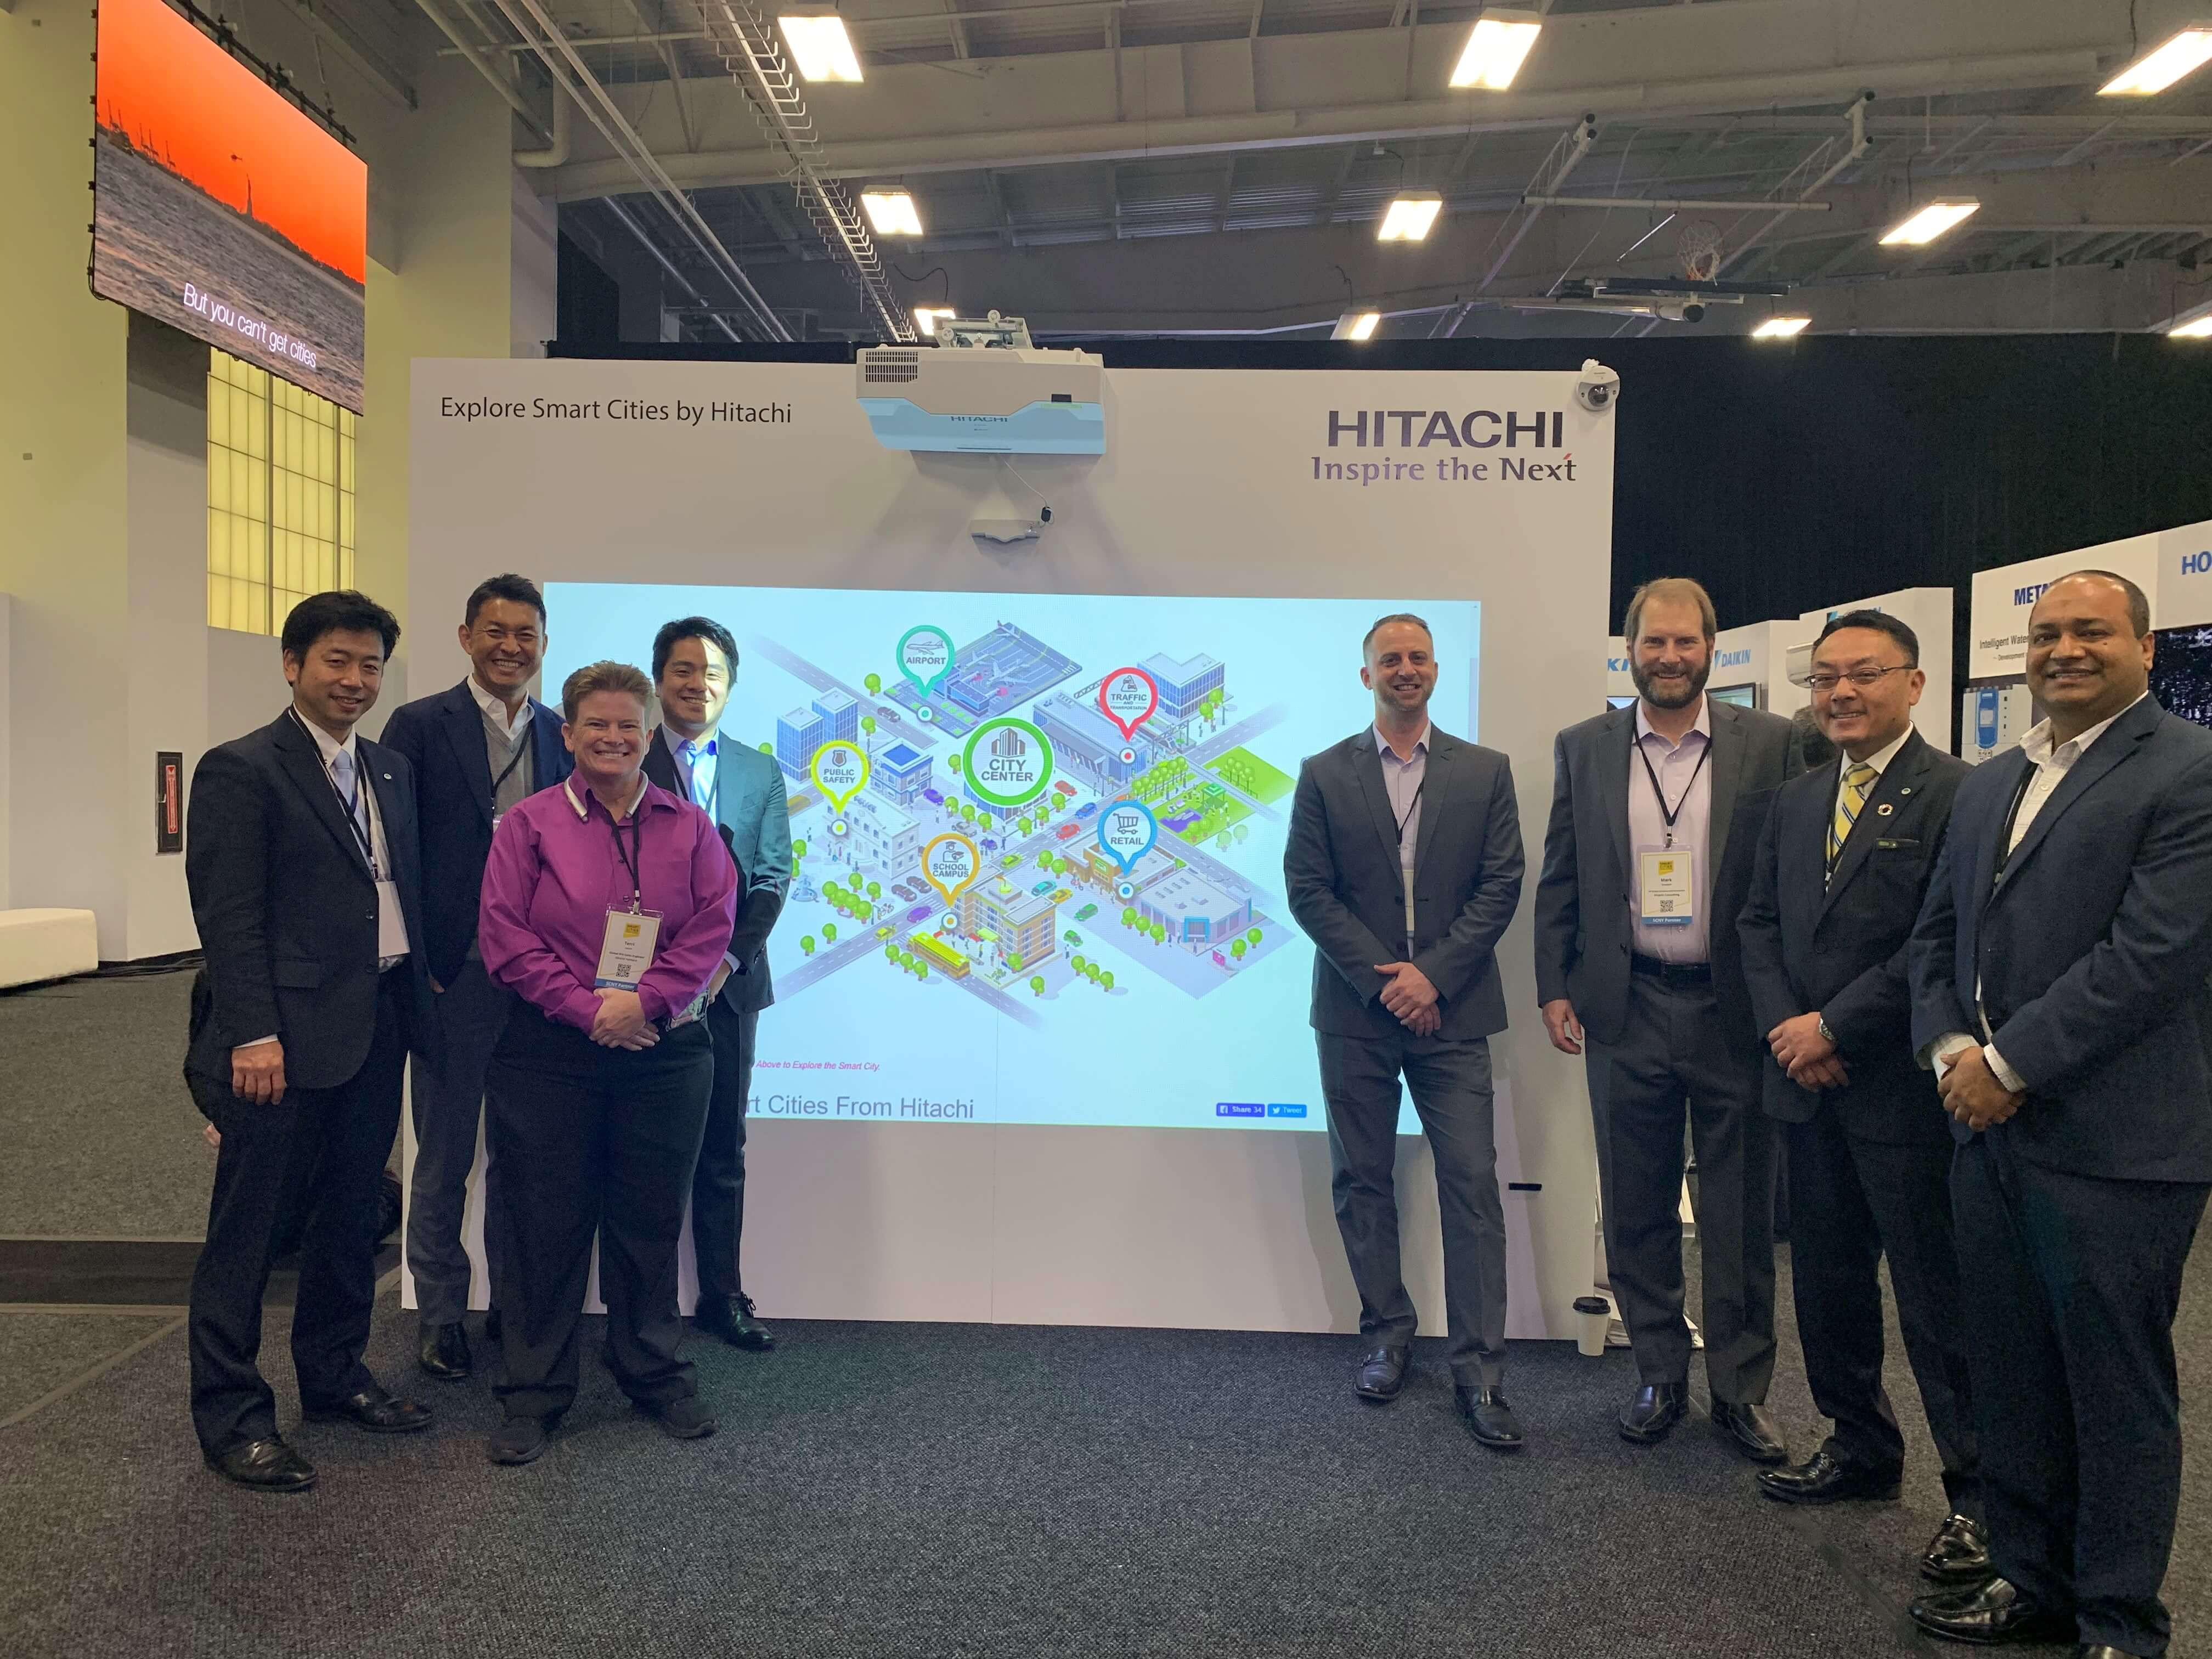 Explore Smart cities by Hitachi at Smart Cities New York 2019